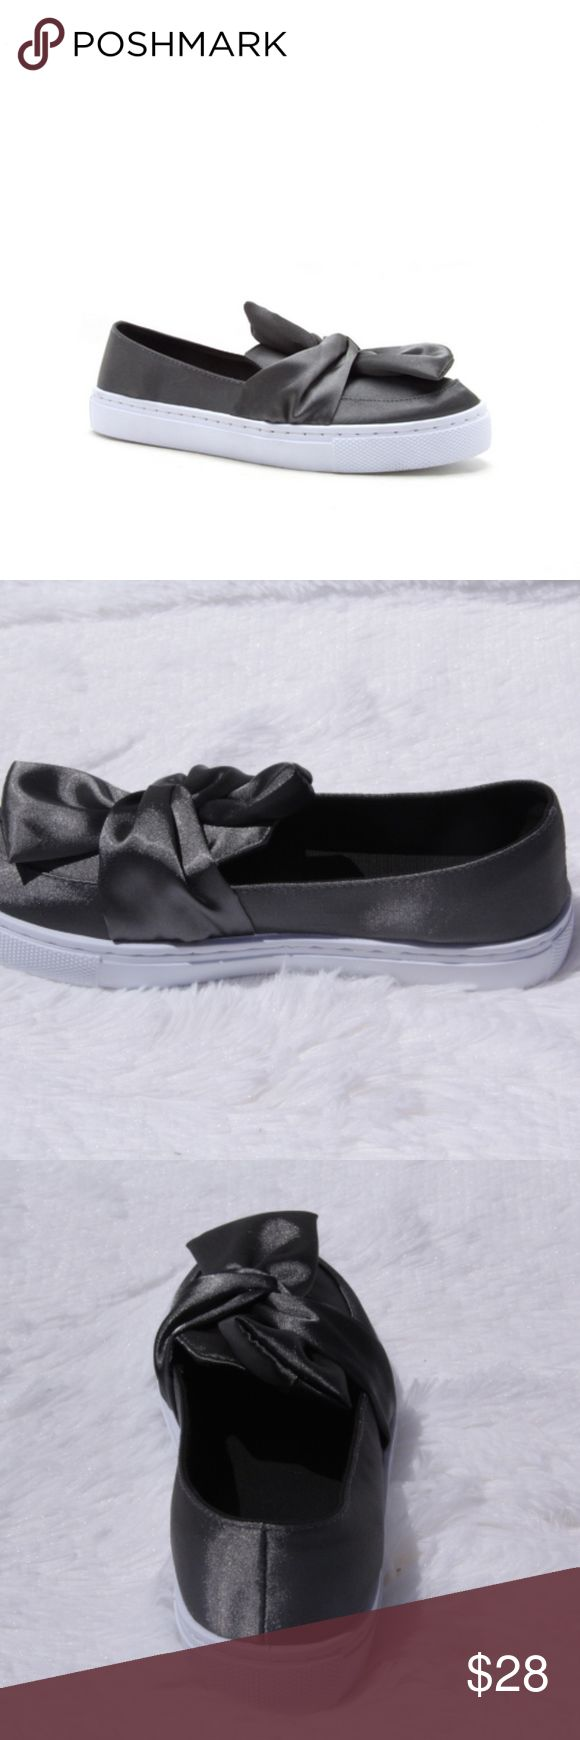 Ladies satin sneaker with bow Slip into this comfy satin  bow sneaker that is perfect for your casual weekend ensemble  MATERIAL: MAN-MADE, LEATHERETTE  SOLE: SYNTHETIC  FITTING: TRUE TO SIZE EN-REBA-178C_GRAY Shoes Sneakers